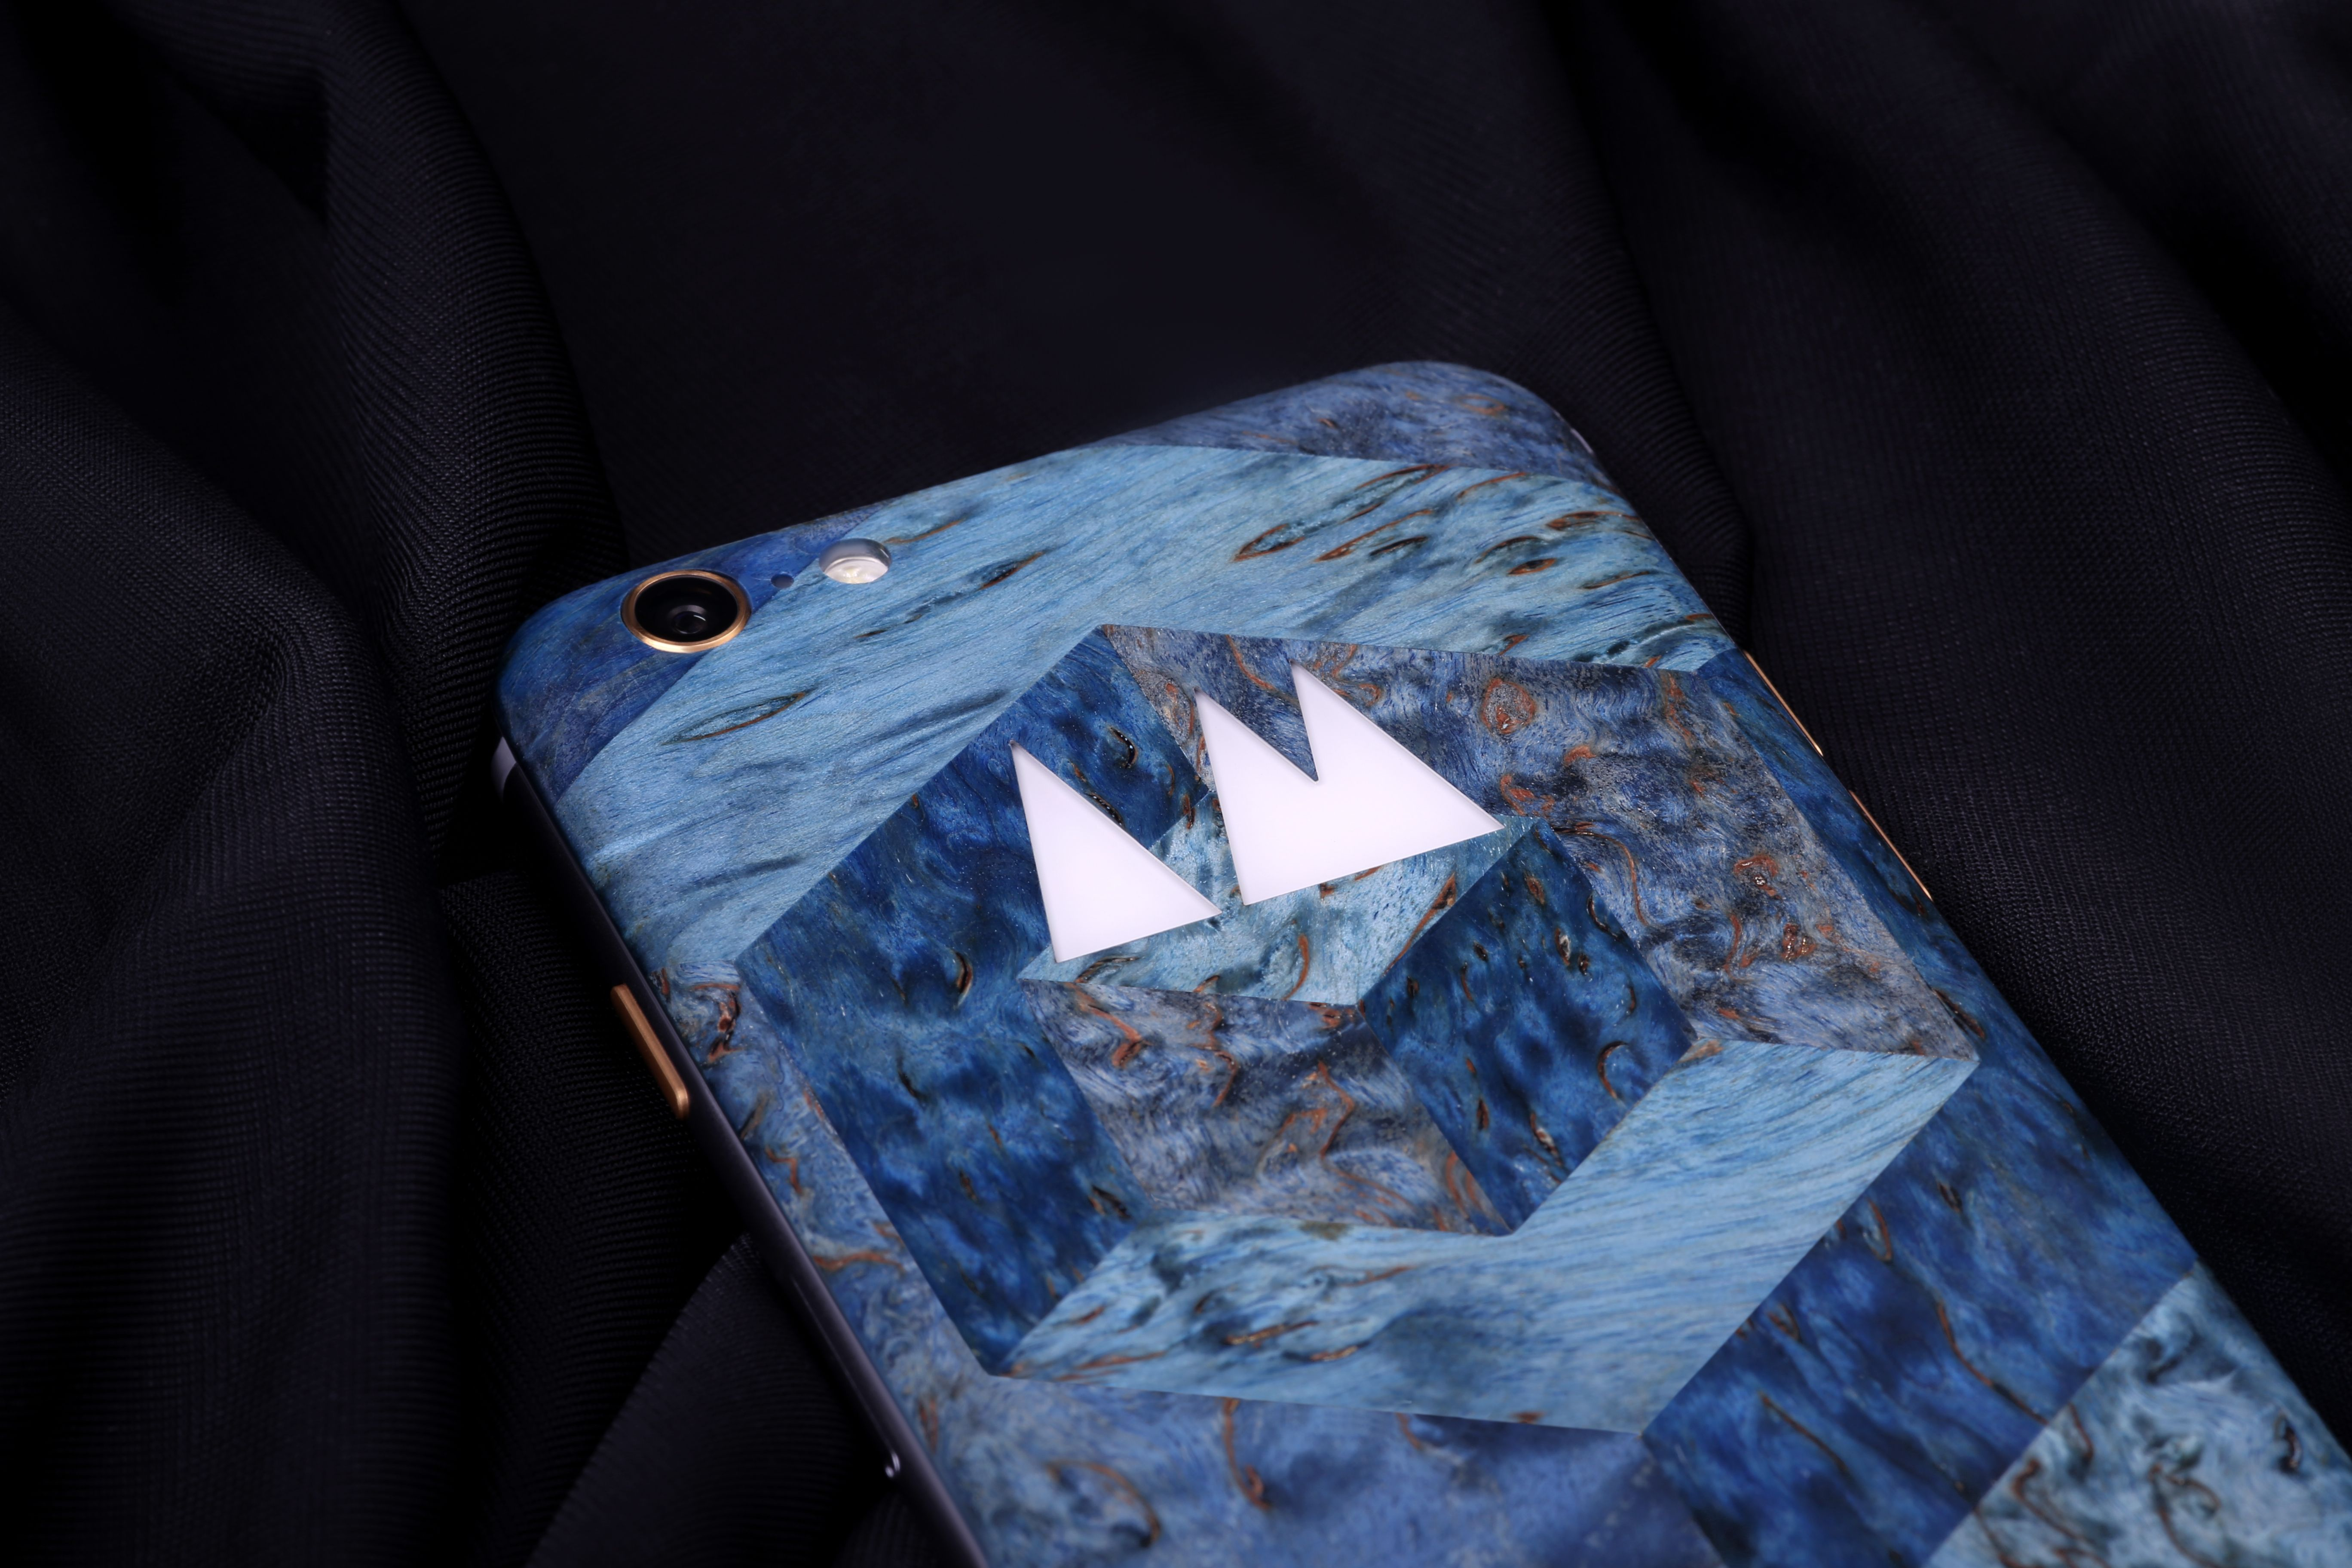 Custom iPhone 6 for Russian showman Andrey Malakhov